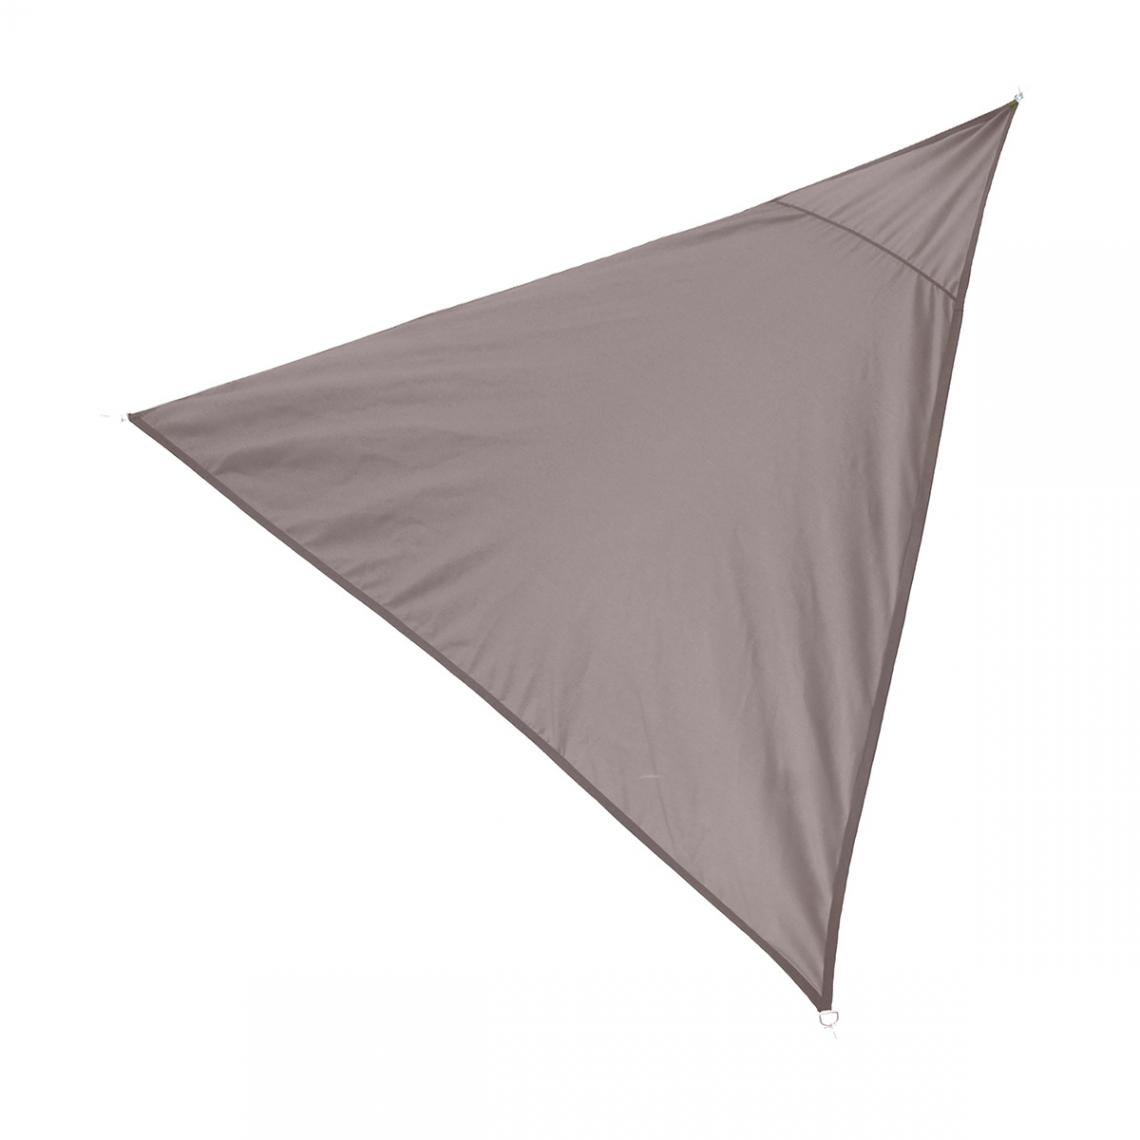 Cemonjardin Voile d'ombrage Taupe 350 x 350 x 340 cm